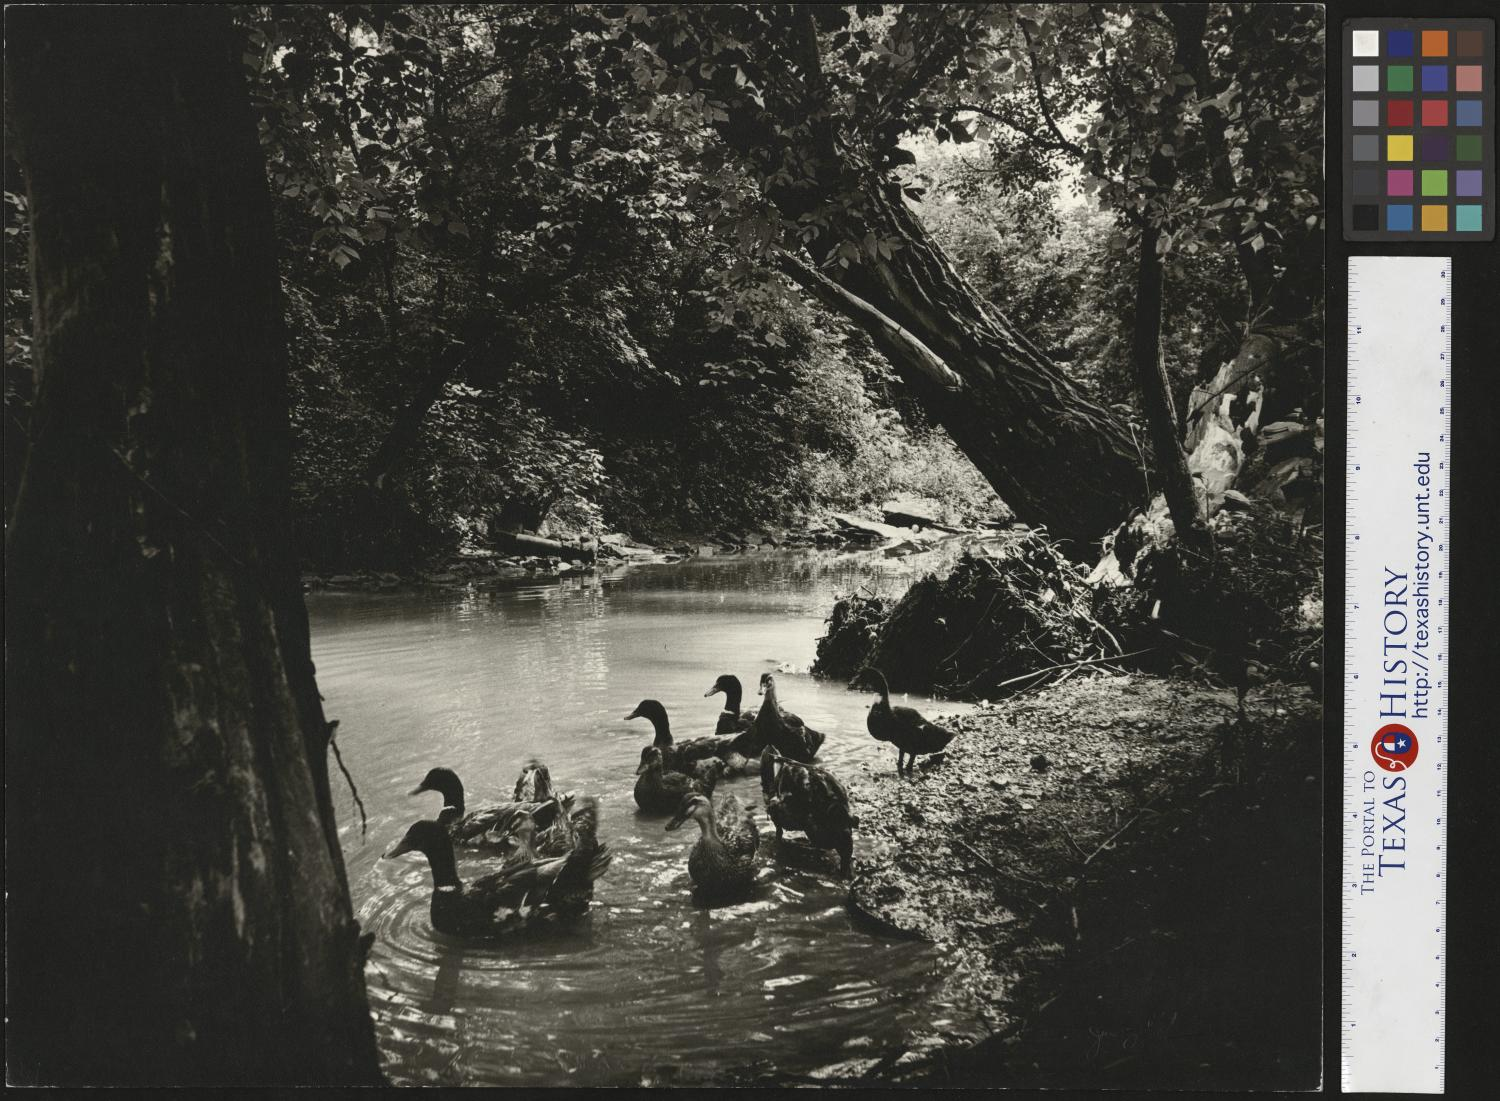 Ducks in Mulberry Creek, Lynchburg Tennessee, Photograph of a group of ducks, swimming in a creek. The shores of the creek are heavily forested, and a single, large trunk leans out over the water. Junebug Clark narrative: Ducks in Mulberry Creek, Lynchburg Tennessee. This was used in a Jack Daniel Ad. The story being that The Distillery was undergoing some renovation of their grain silos. The ducks would hang out around the silos searching for spilled grain and then lived in a pond behind the silos. During the renovation the ducks moved couple hundred yards to Mulberry Creek (see photo) but now the construction is over and peace has returned to The Hollow and so has our ducks. Photo by: Junebug Clark. Signed by: Junebug Clark Clark PhotoFile: 9045-0095-5,